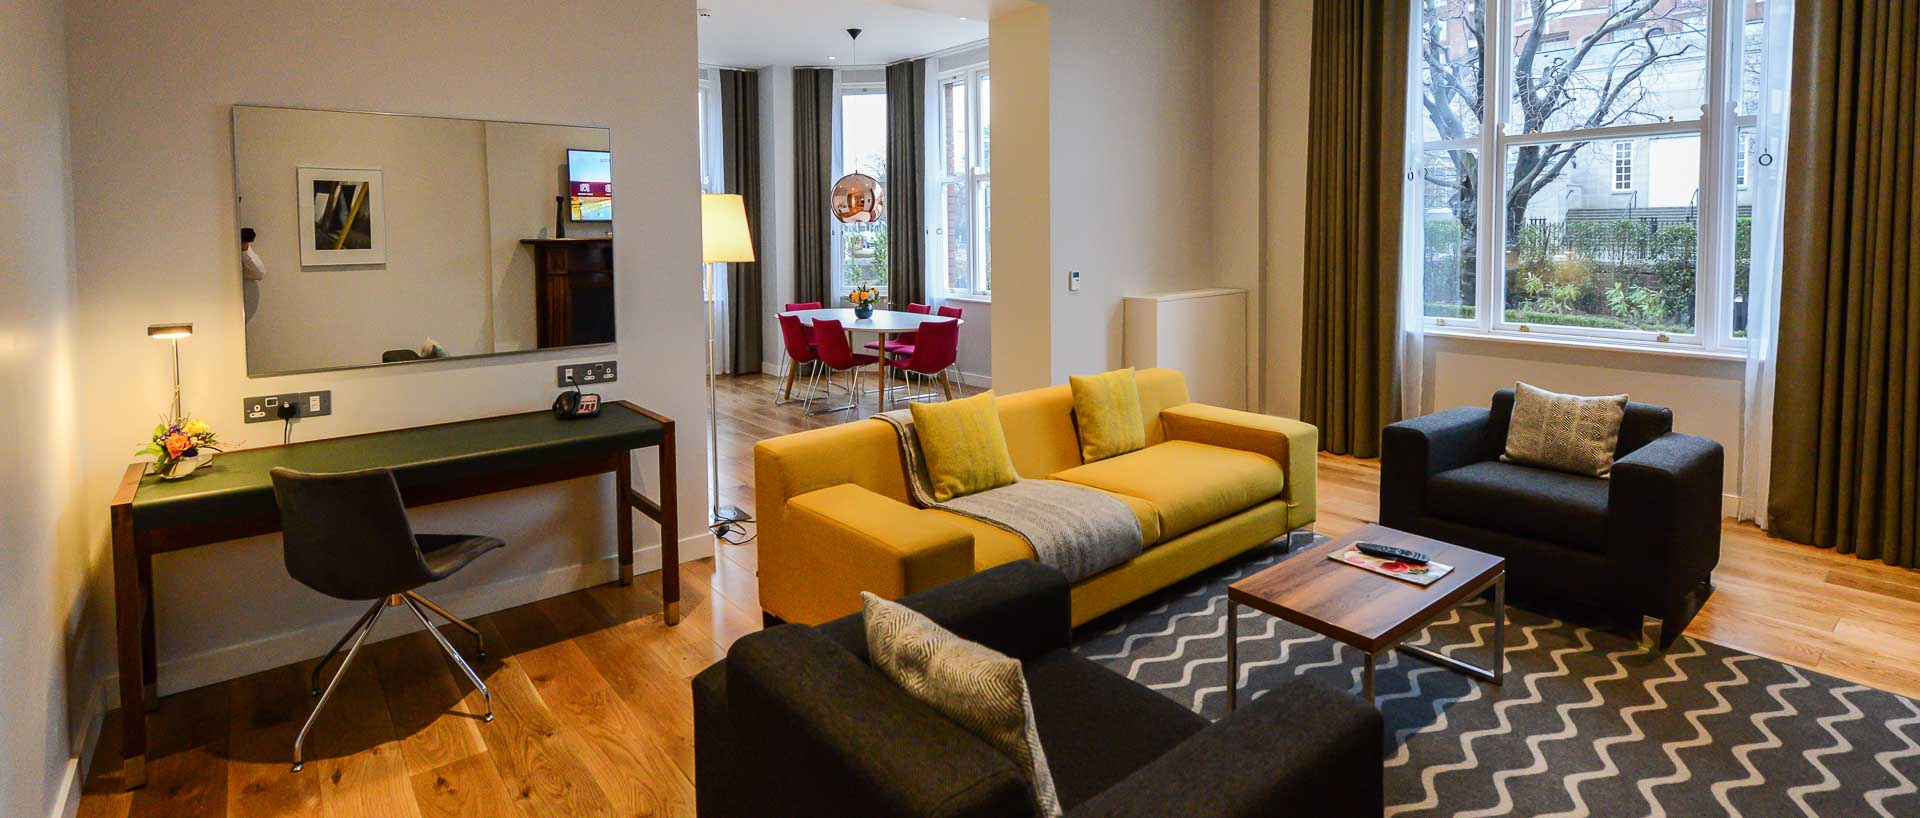 PREMIER SUITES PLUS Dublin Ballsbridge open plan lounge and dining room